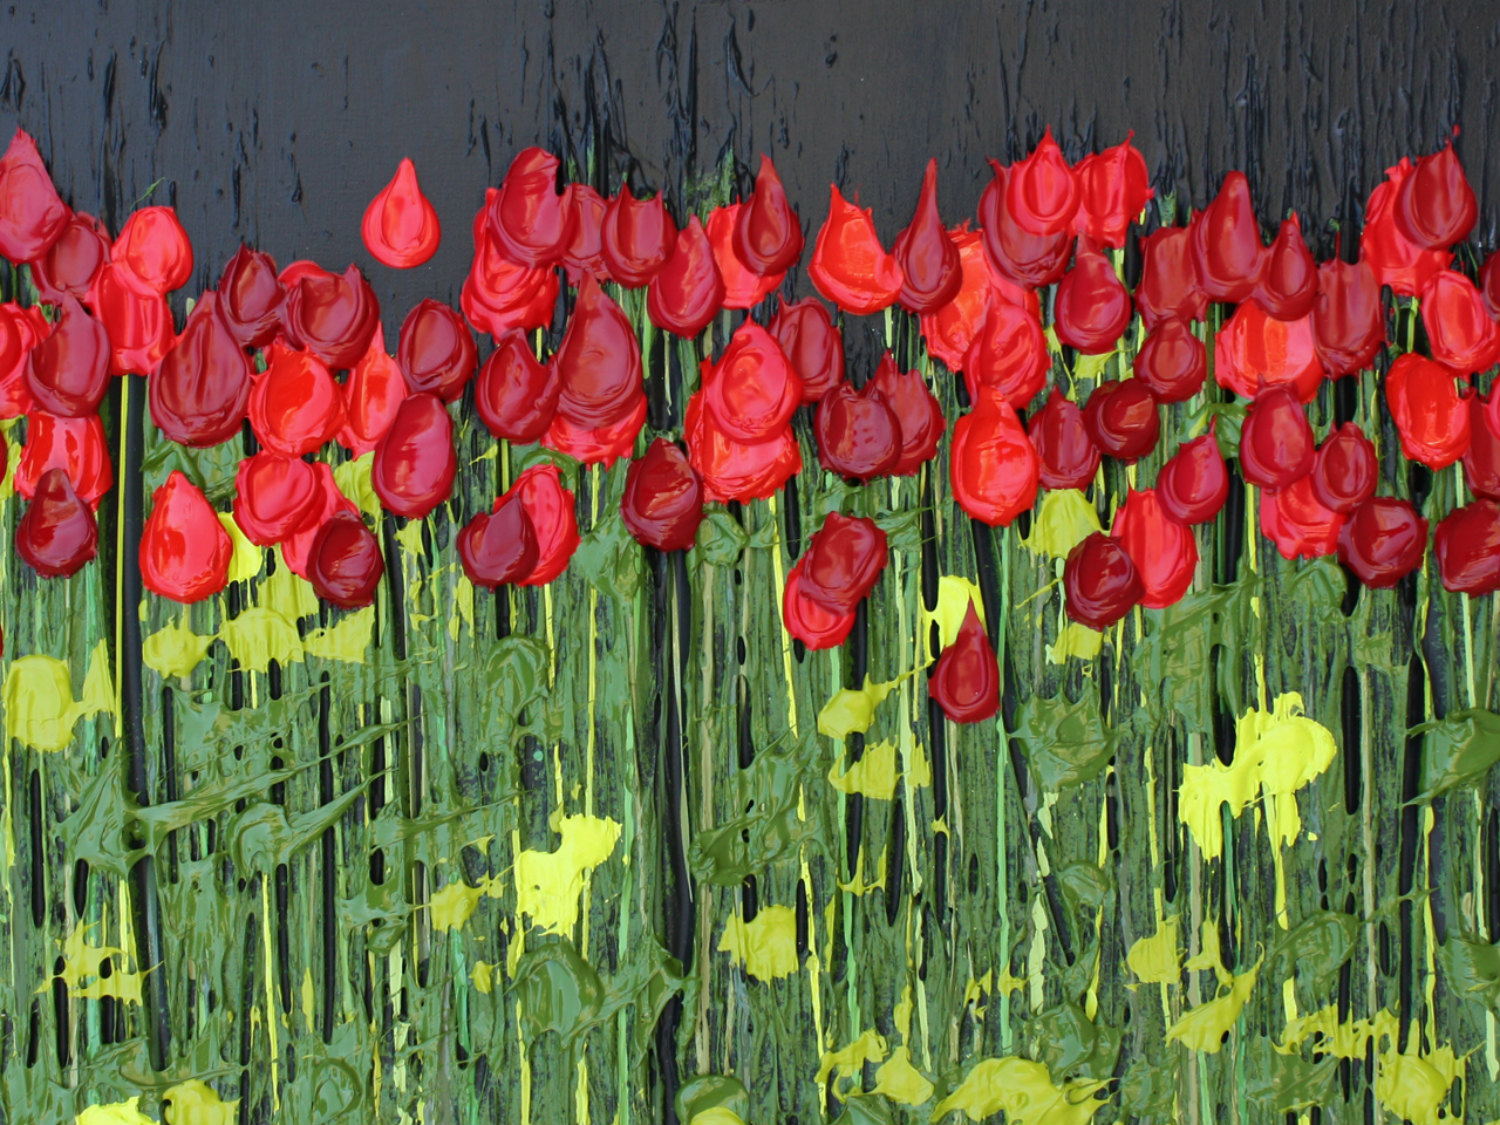 blind painters jeff hanson colour field flowers grass red